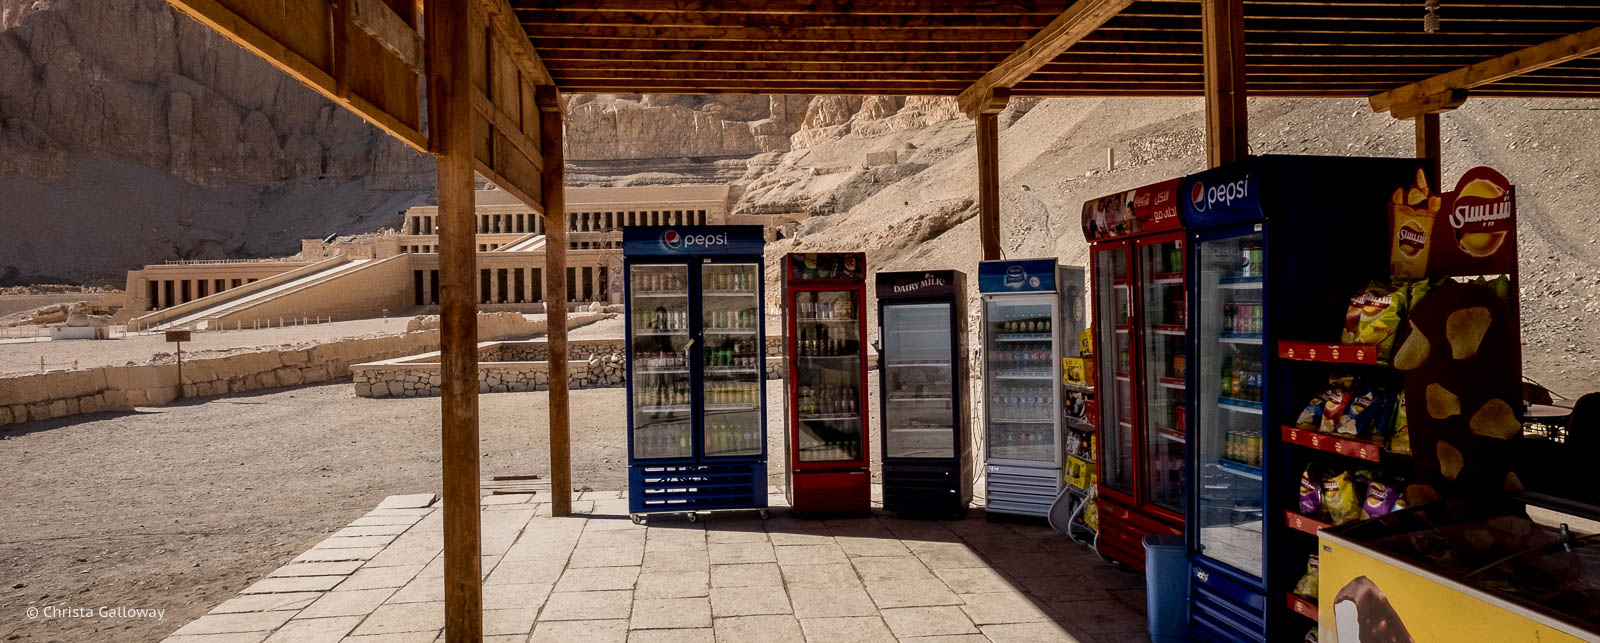 A restaurant and souvenir stand near the Mortuary Temple of Hatshepsut.